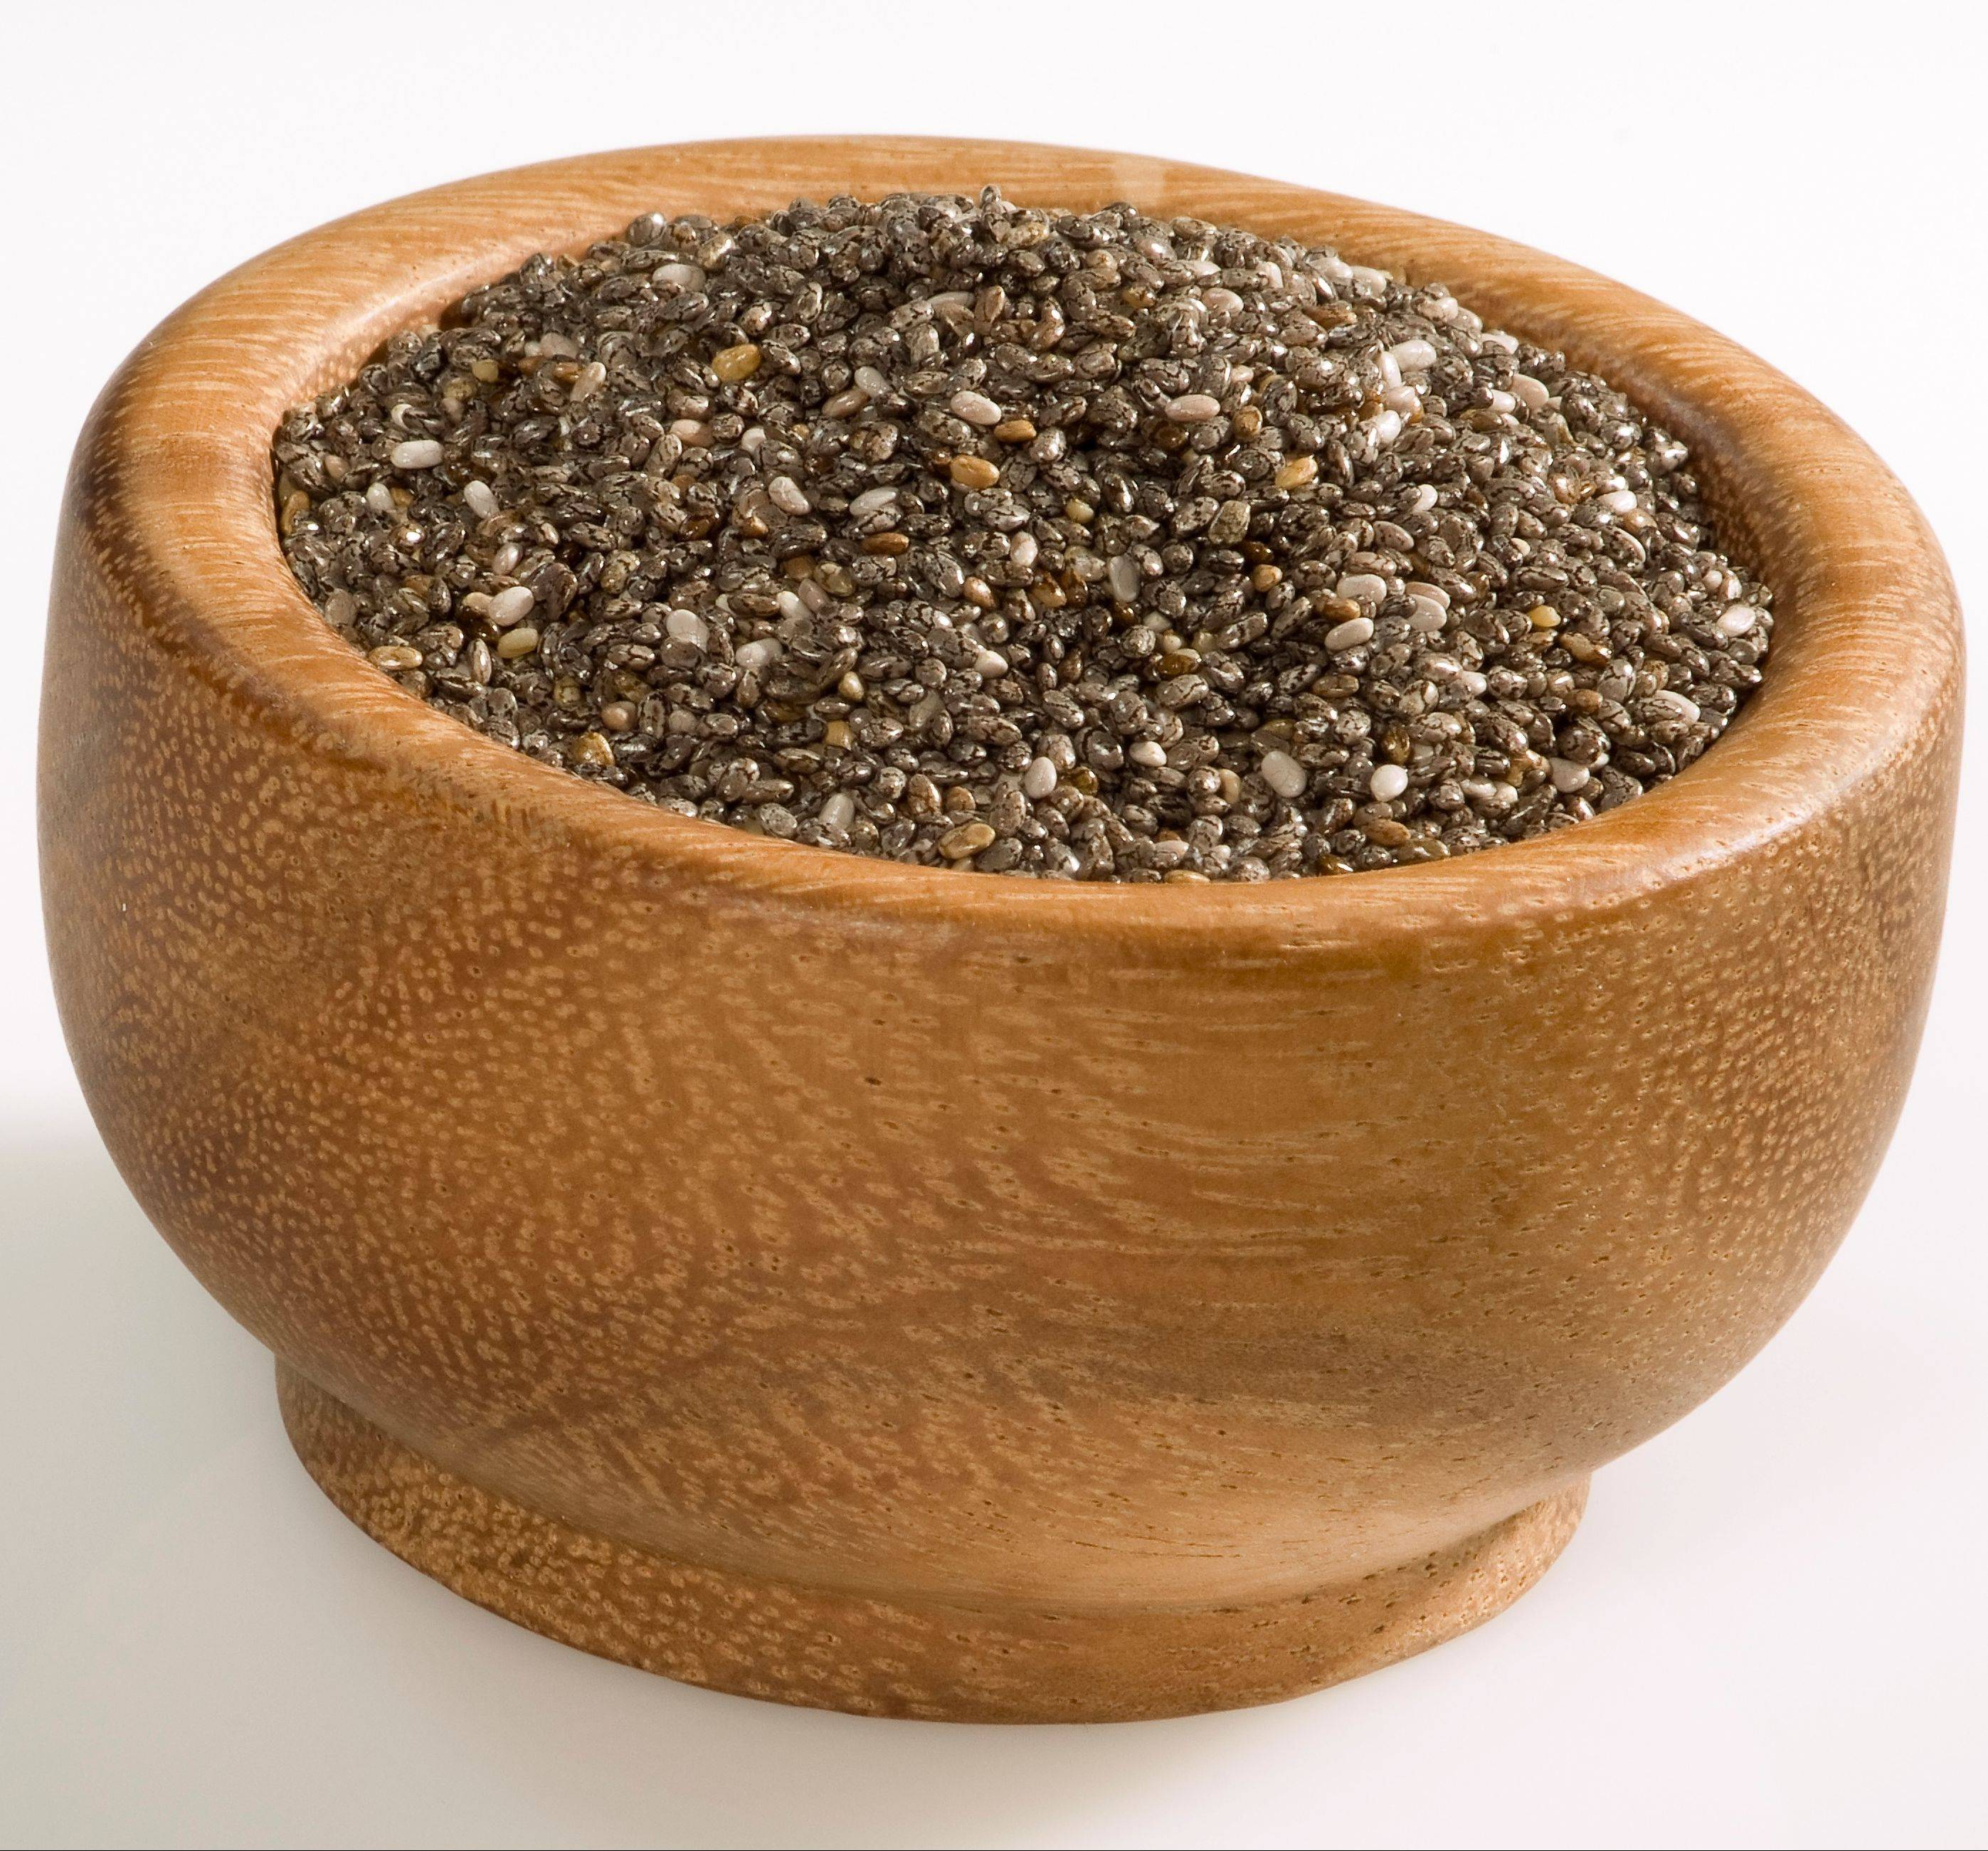 Chia seeds are a nutritional powerhouse, offering antioxidants, protein, fiber and omega-3s in a small package.